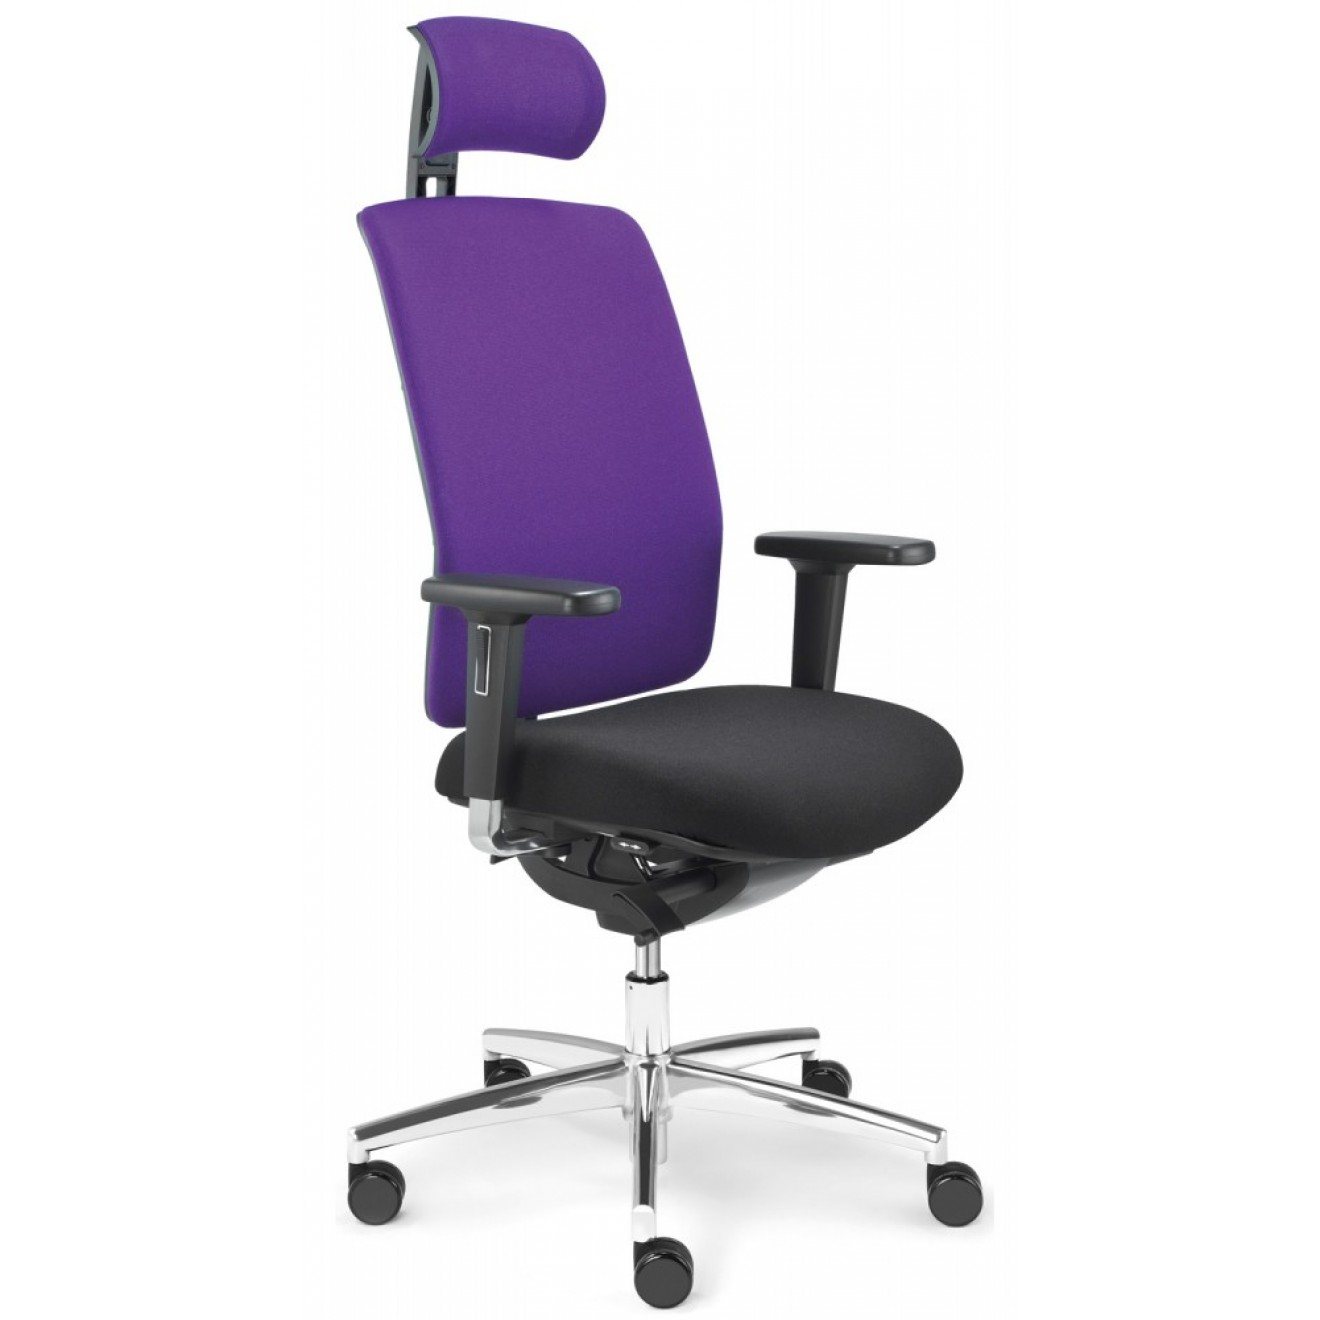 Dauphin - Trendoffice dat-o executive DA 80715